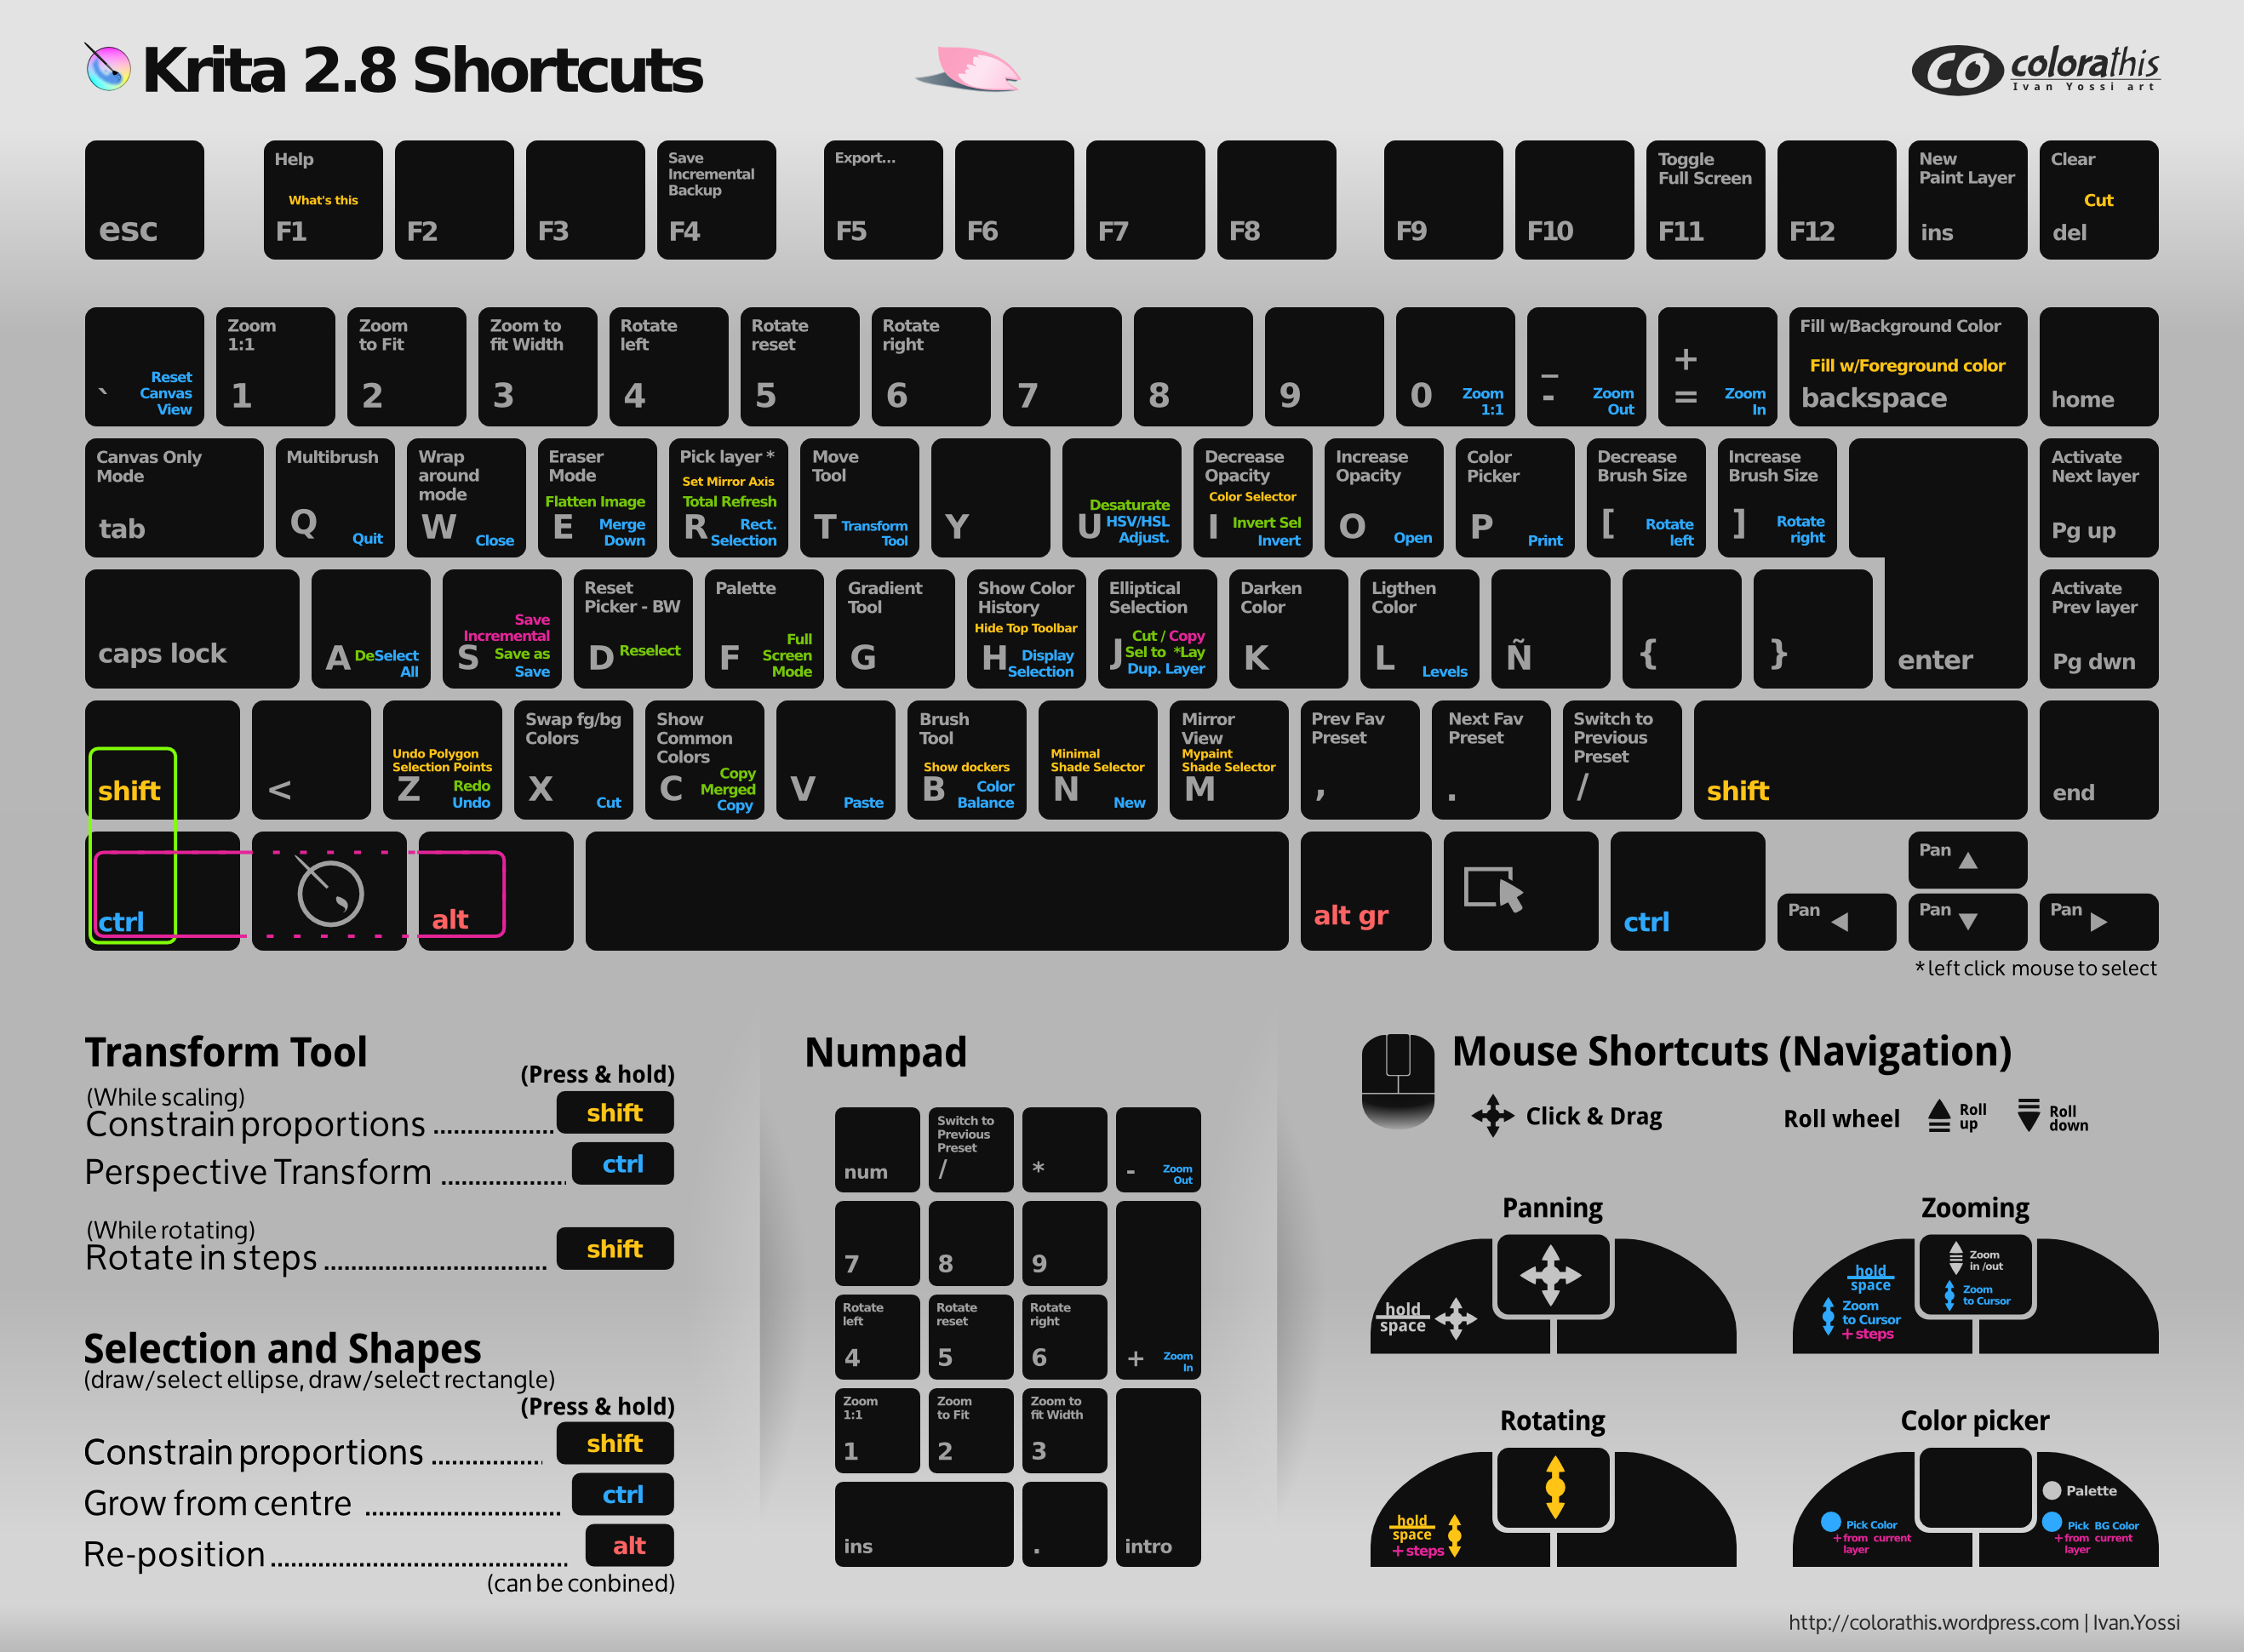 Krita 2.8 shortcuts sheet Dark